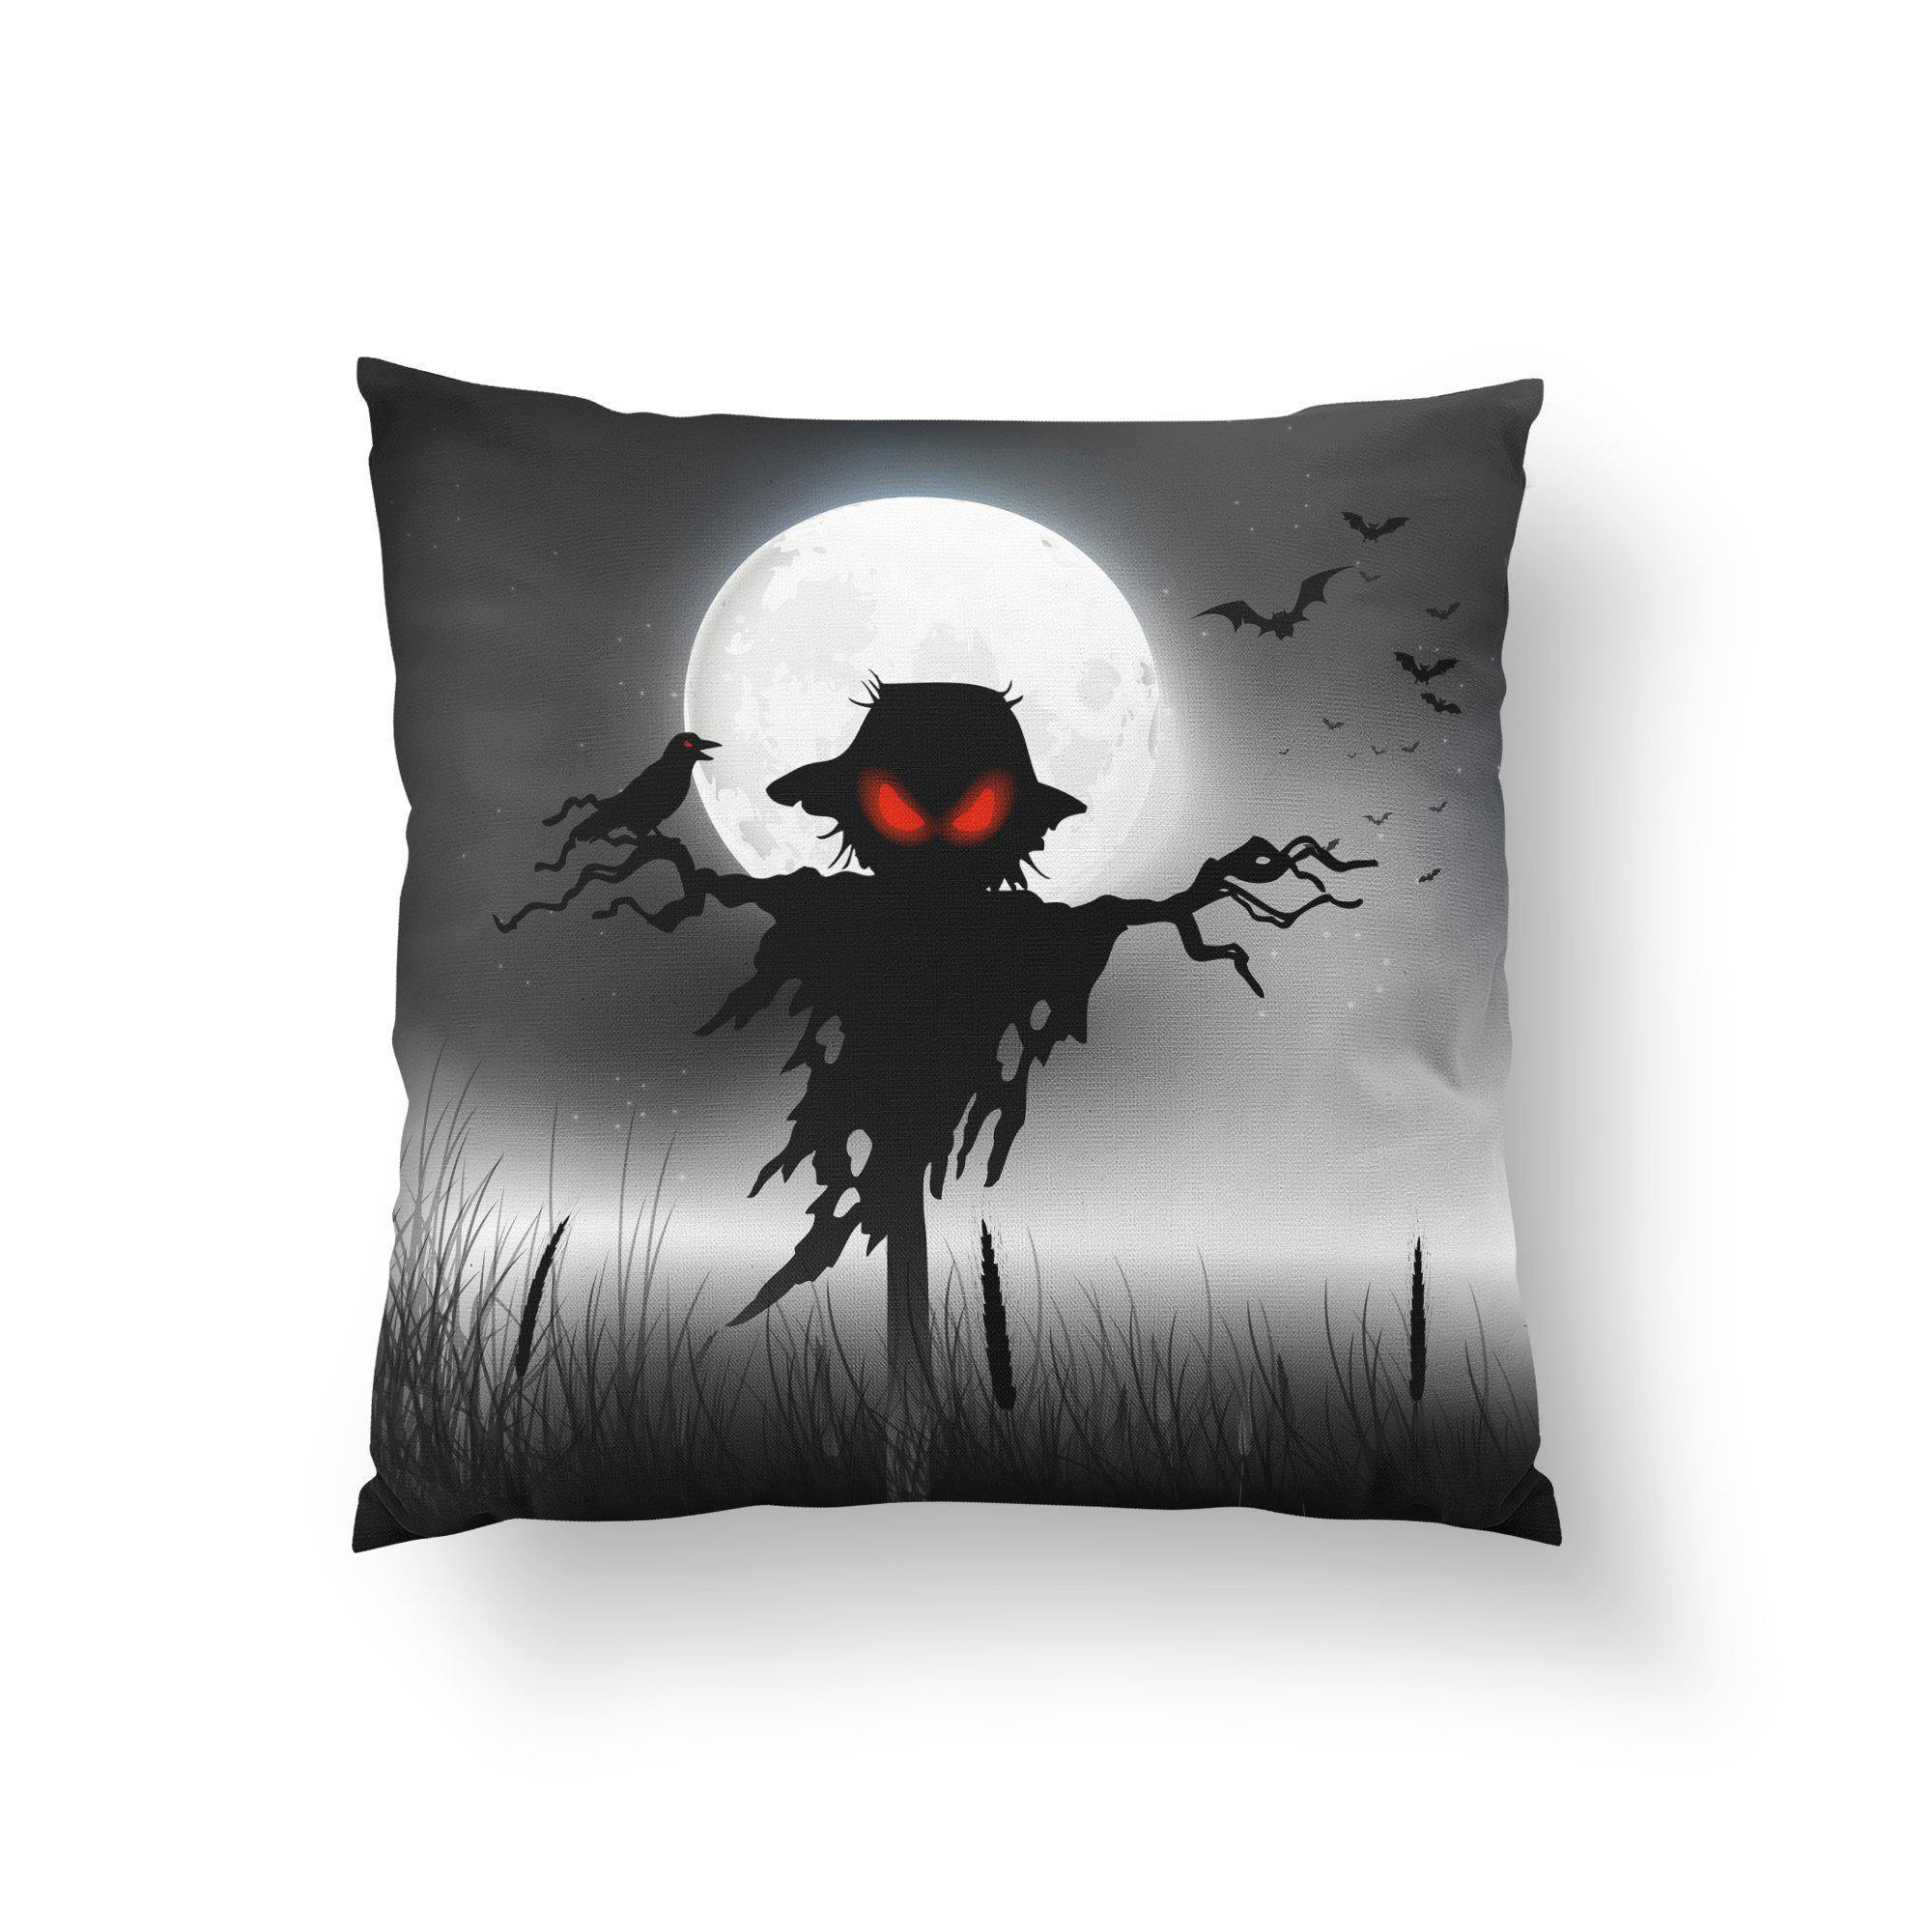 Scarecrow Halloween Throw Pillow - Pillow Covers - W.FRANCIS